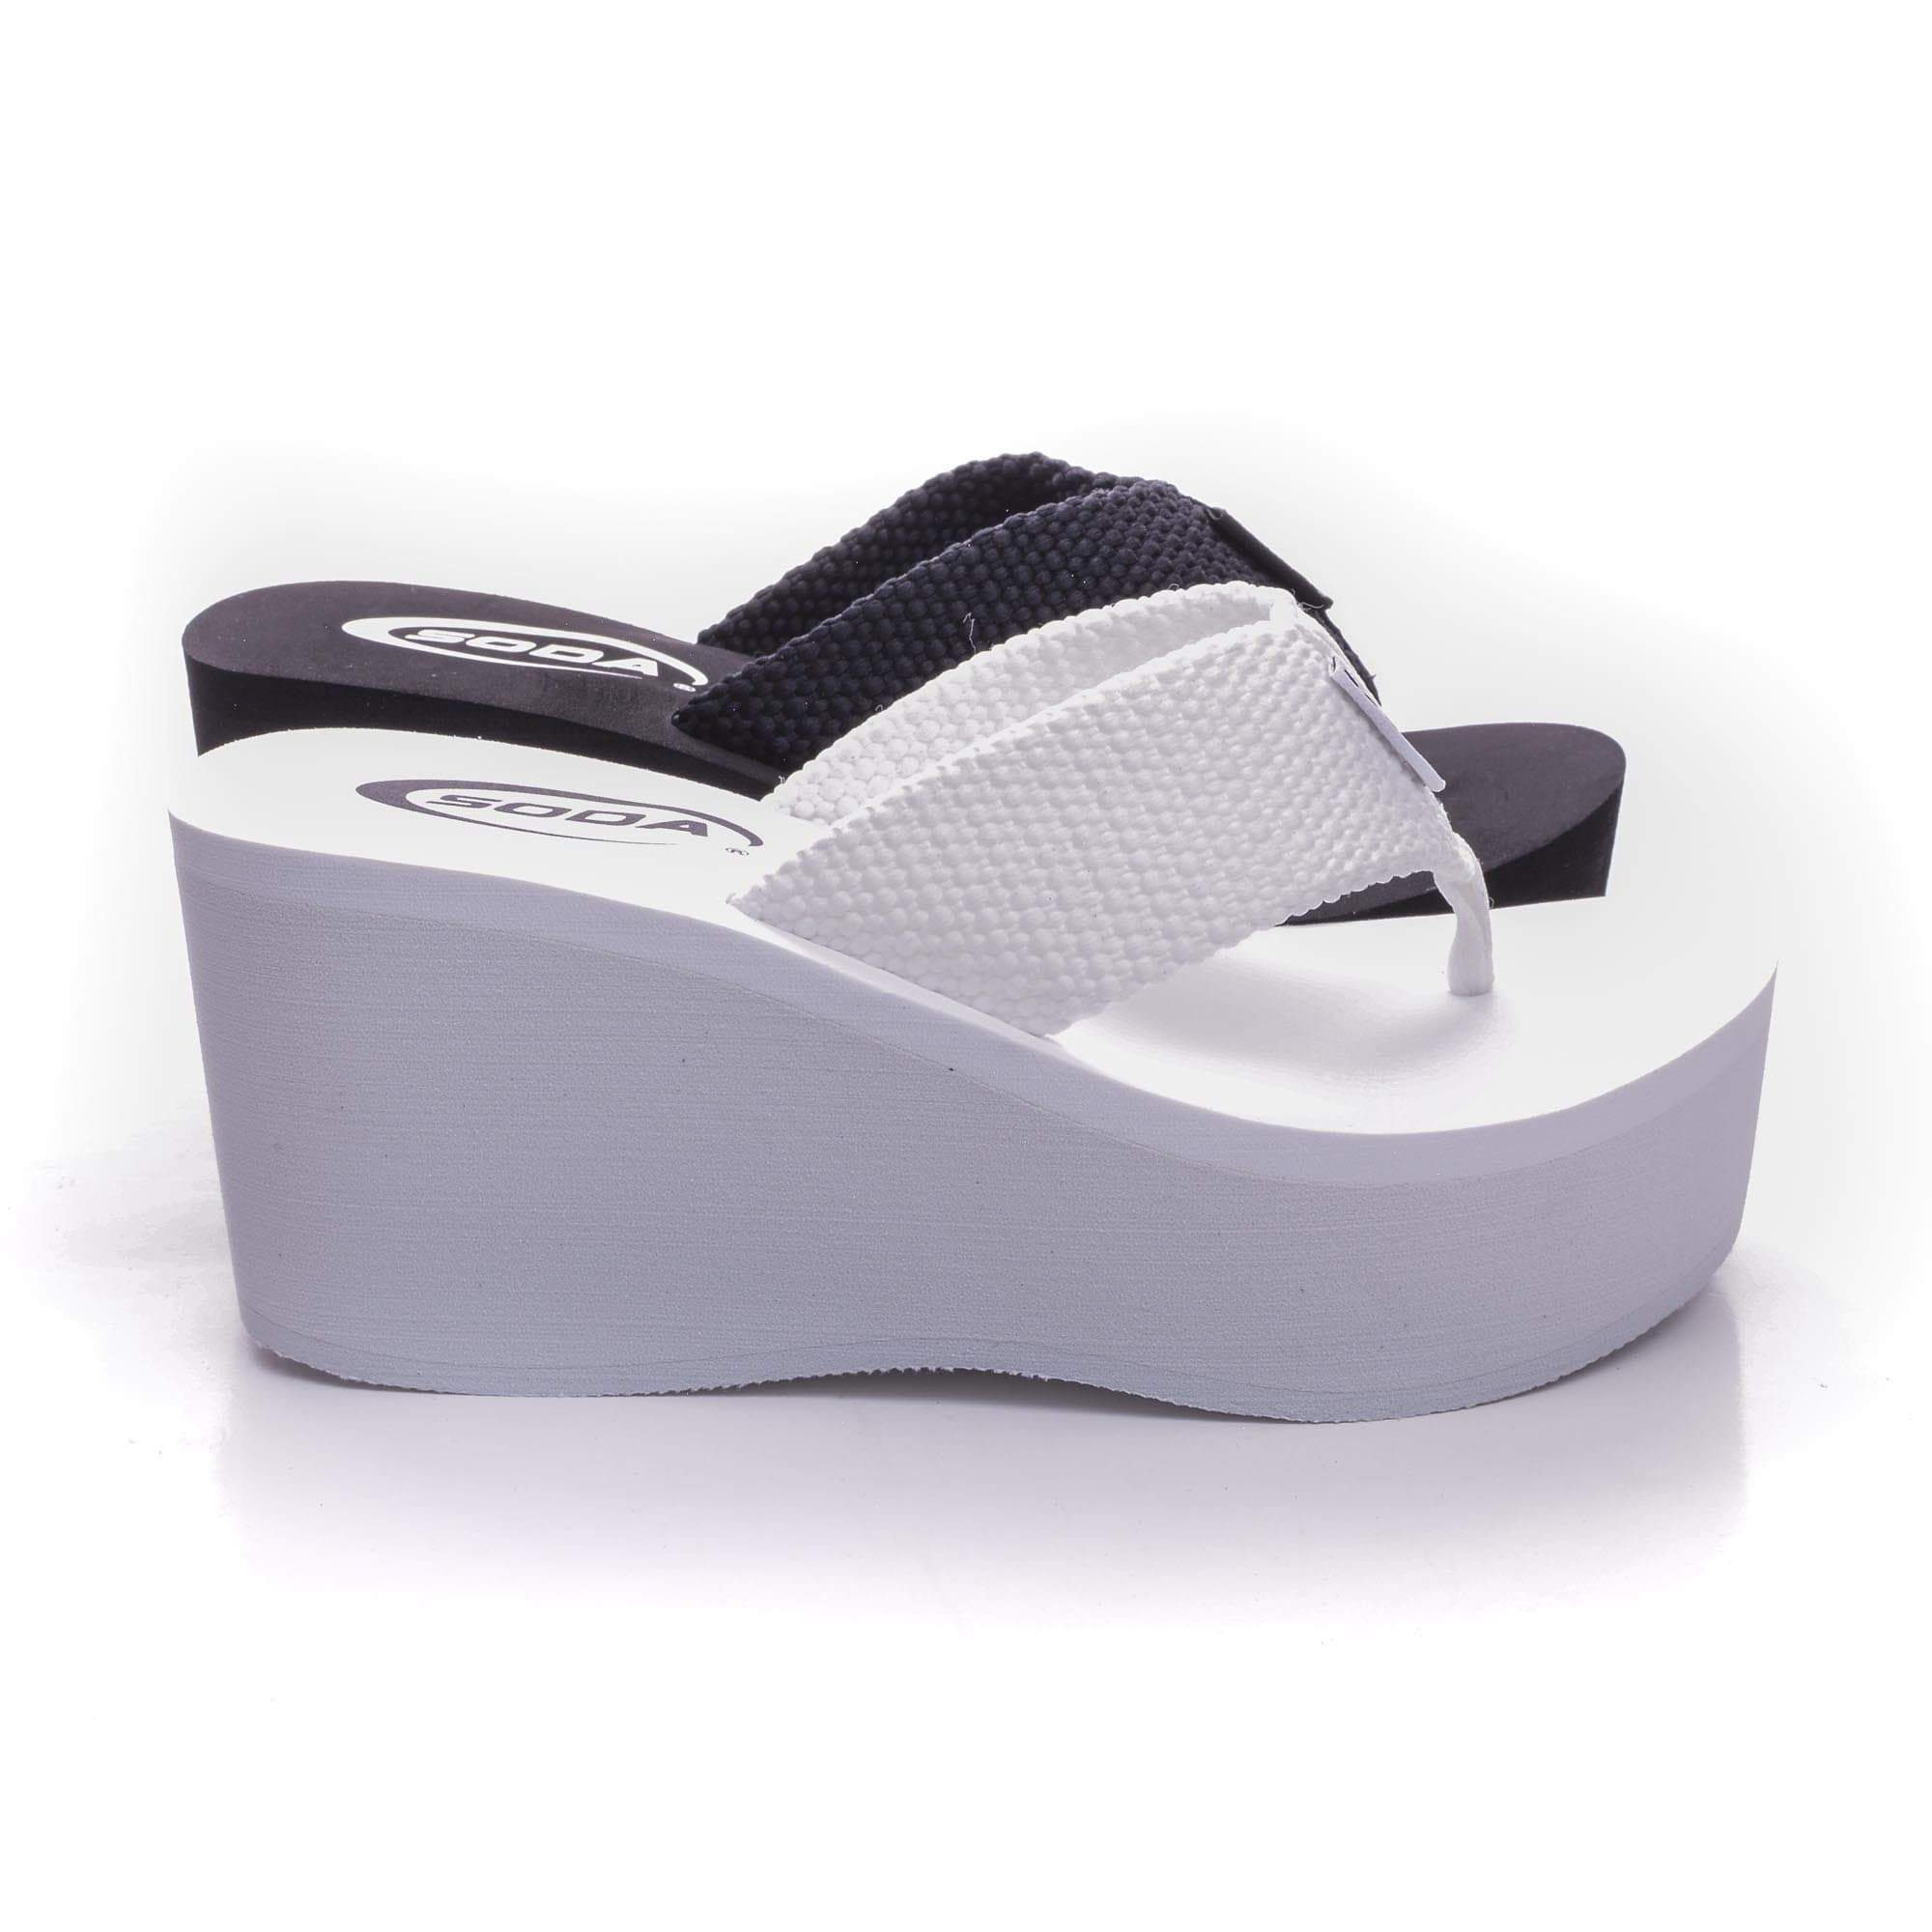 Image of Oxley By Bamboo, Thick T-Thong Slip On Platform High Wedge Sandals